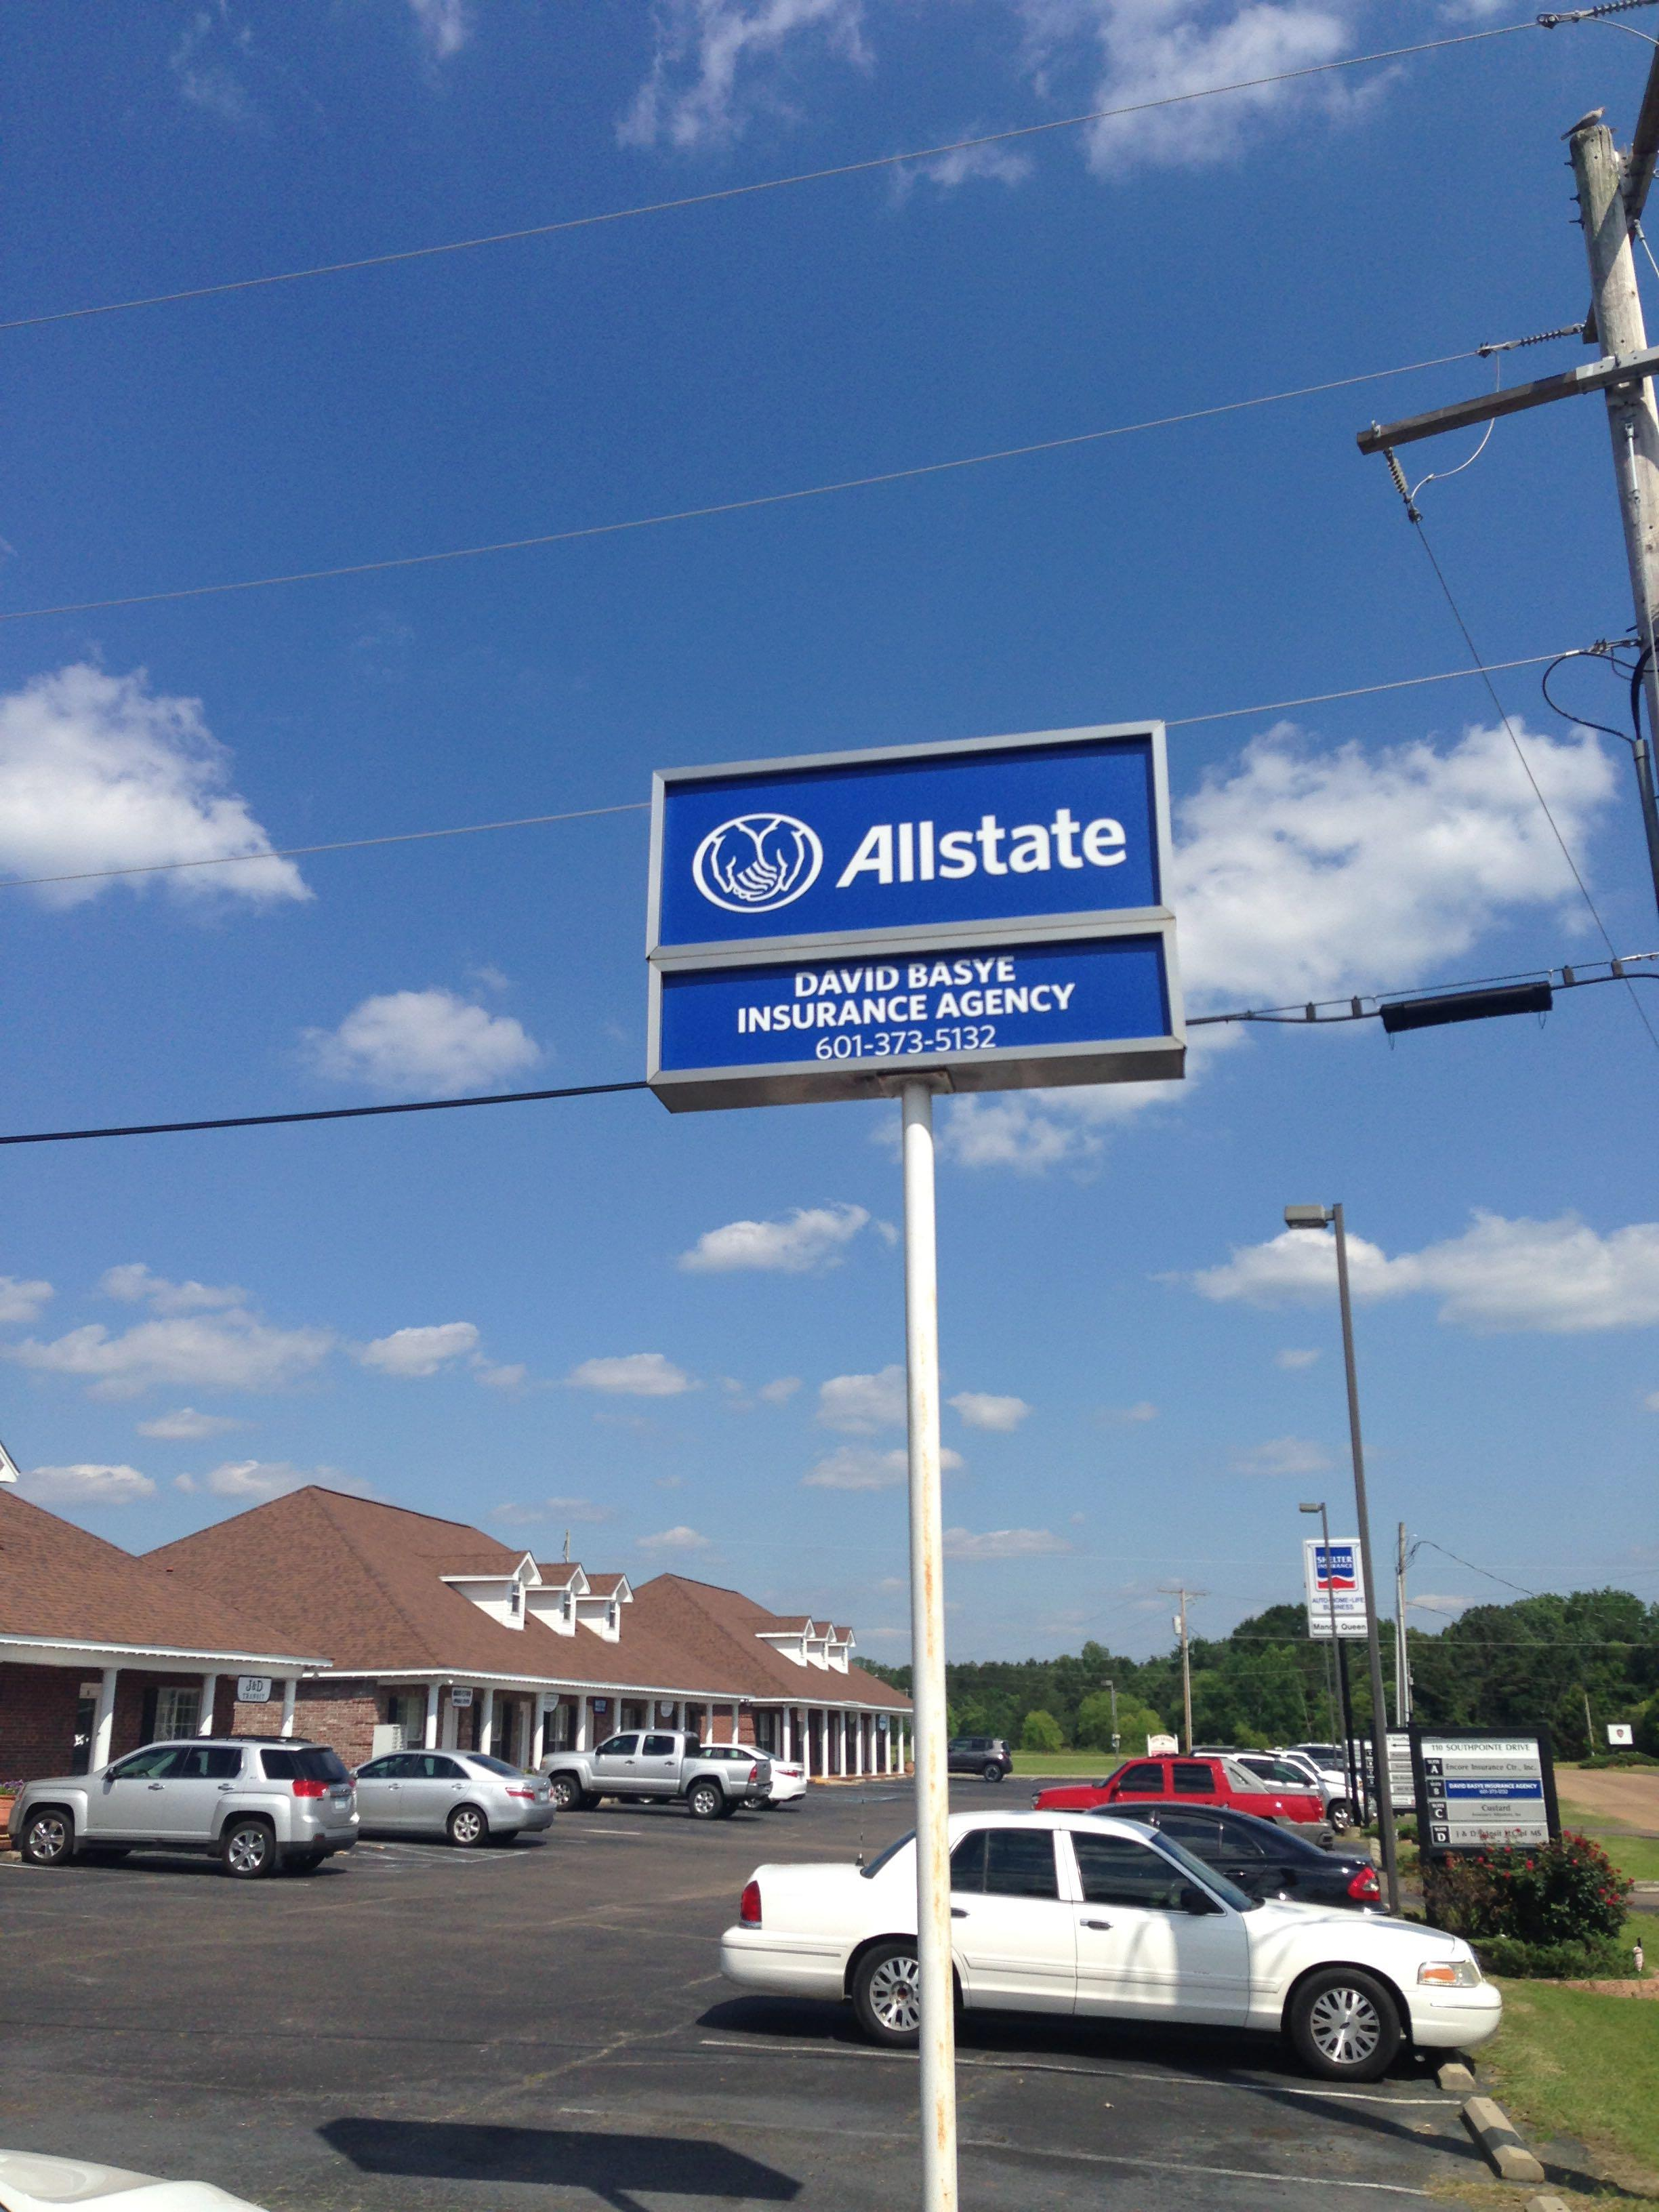 Allstate insurance agent m david basye coupons byram ms for Allstate motor club discount code